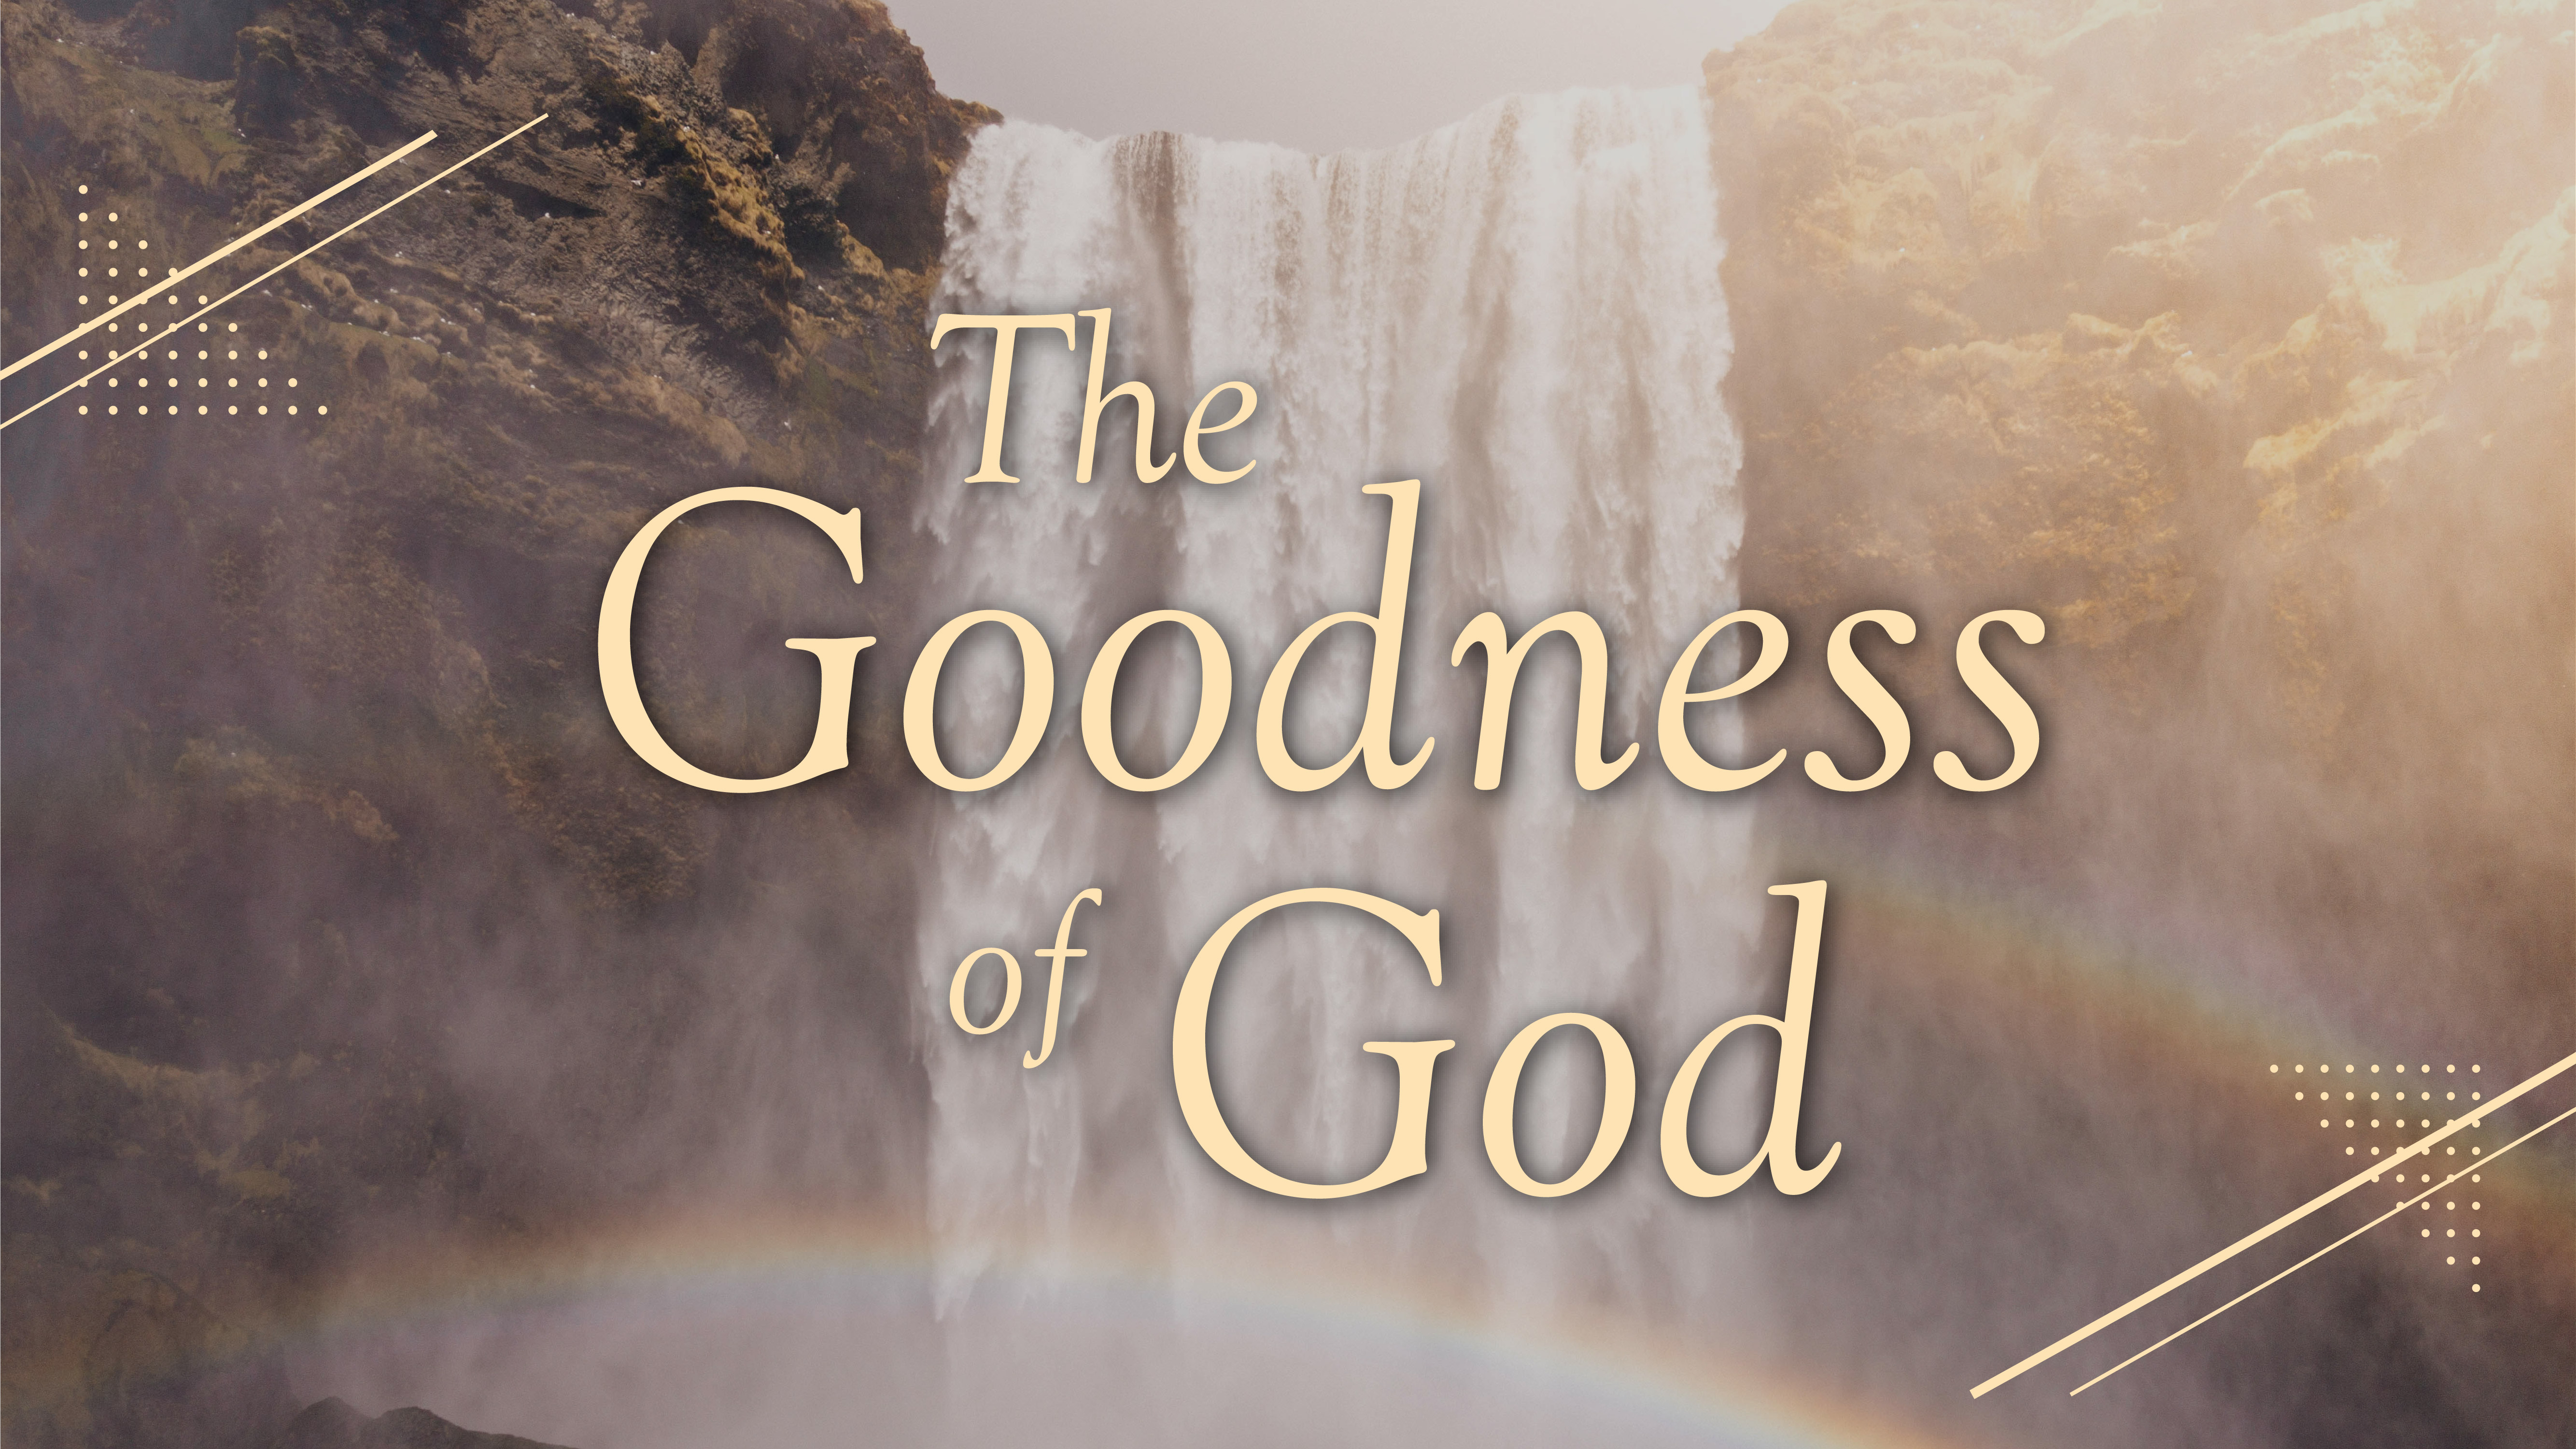 """The series title """"The Goodness of God"""" overlaying a photo of a waterfall flowing over a rock formation, casting a rainbow."""